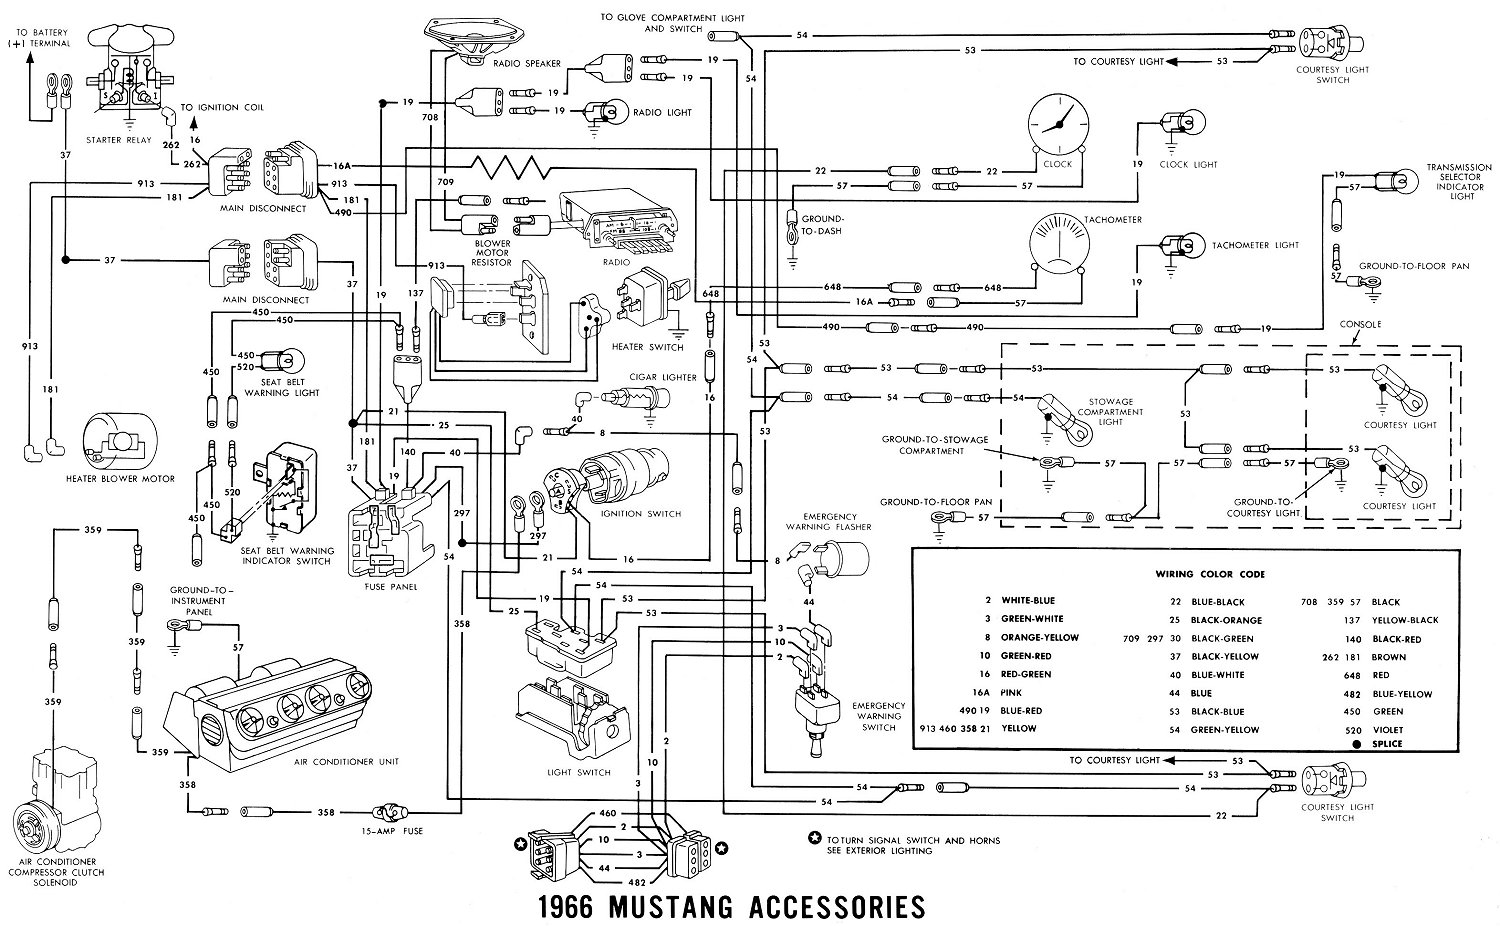 1983 Ford F100 Wiring Diagram Manual Of Alternator Mustang Schematic Rh Aikidorodez Com